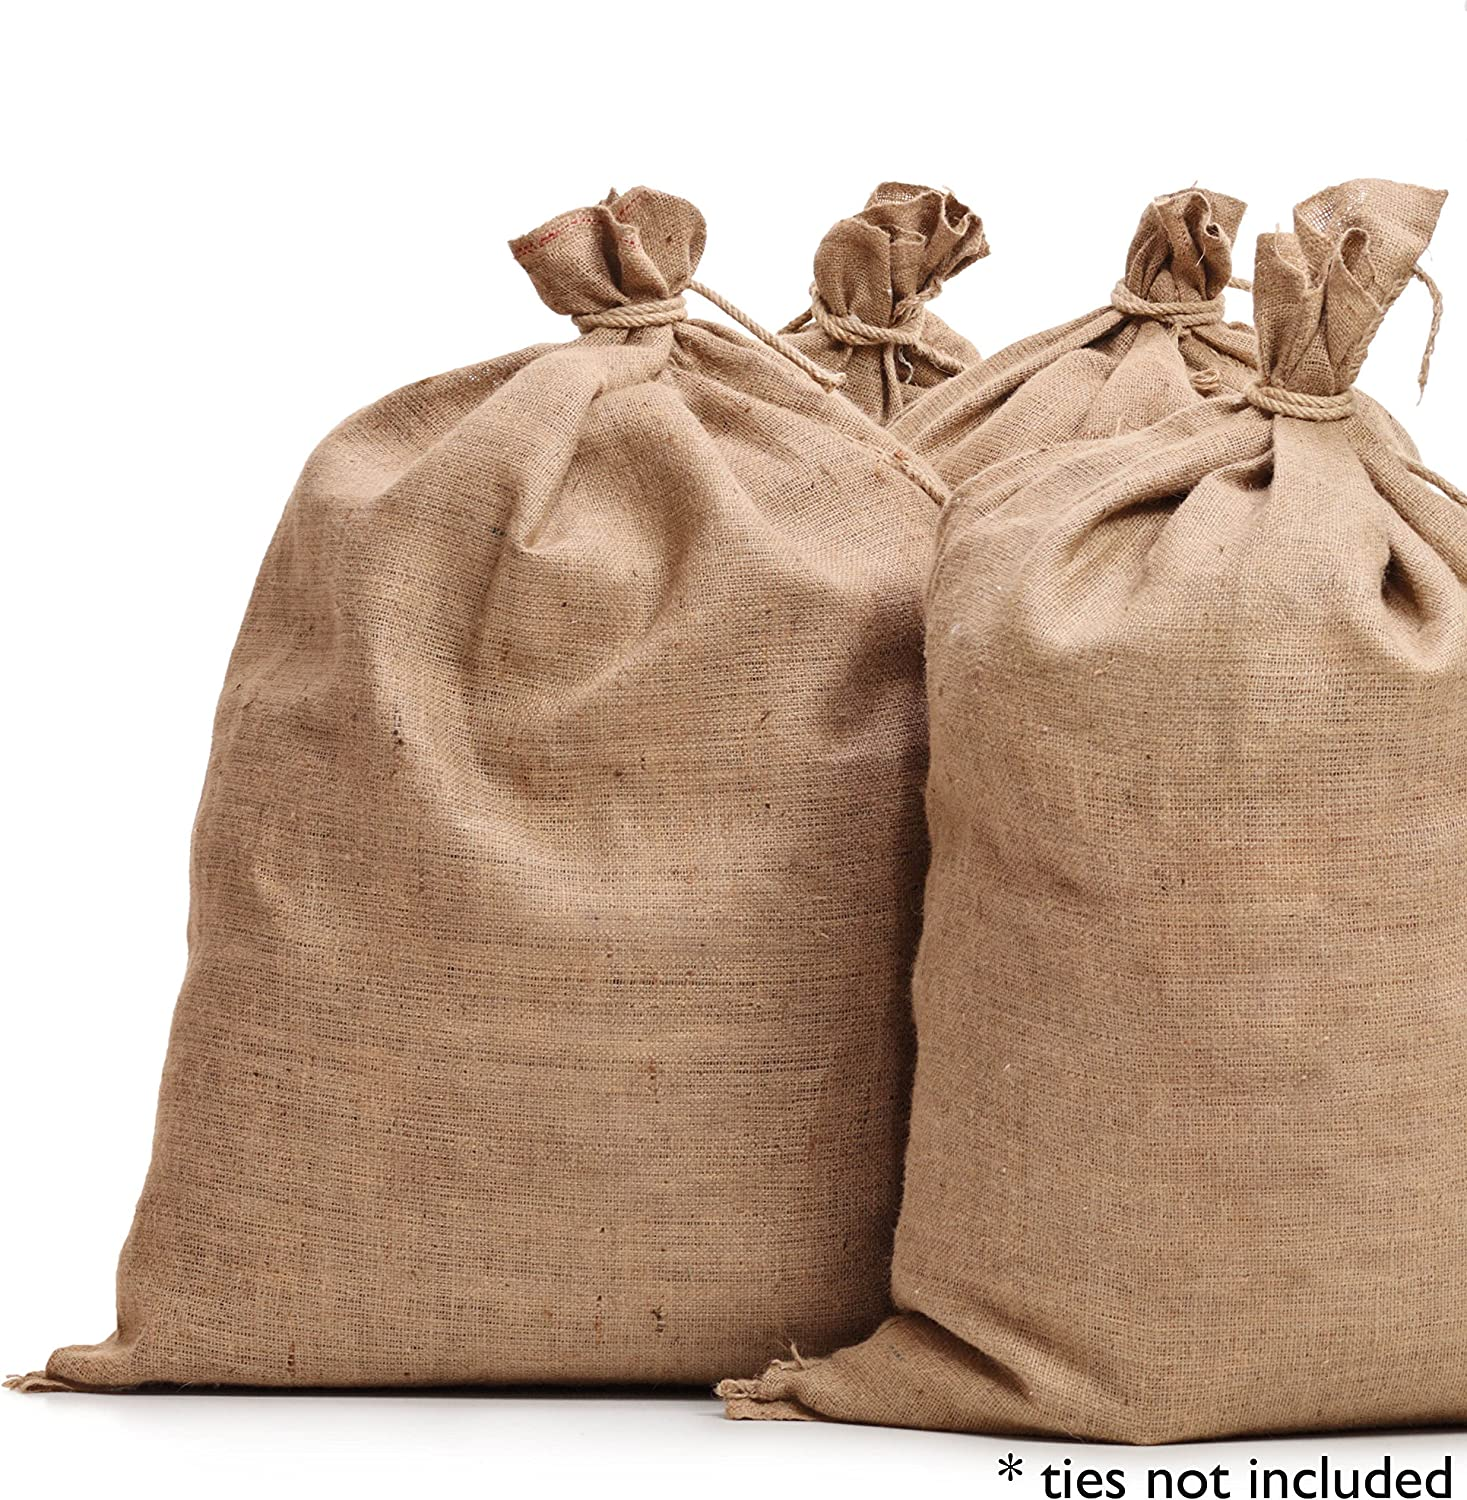 "Burlap Bags 22"" x 36"" - Great for Planting/Gardening - Kids Sack Bag - Sacks Burlap by Sandbaggy (Pack of 10)"